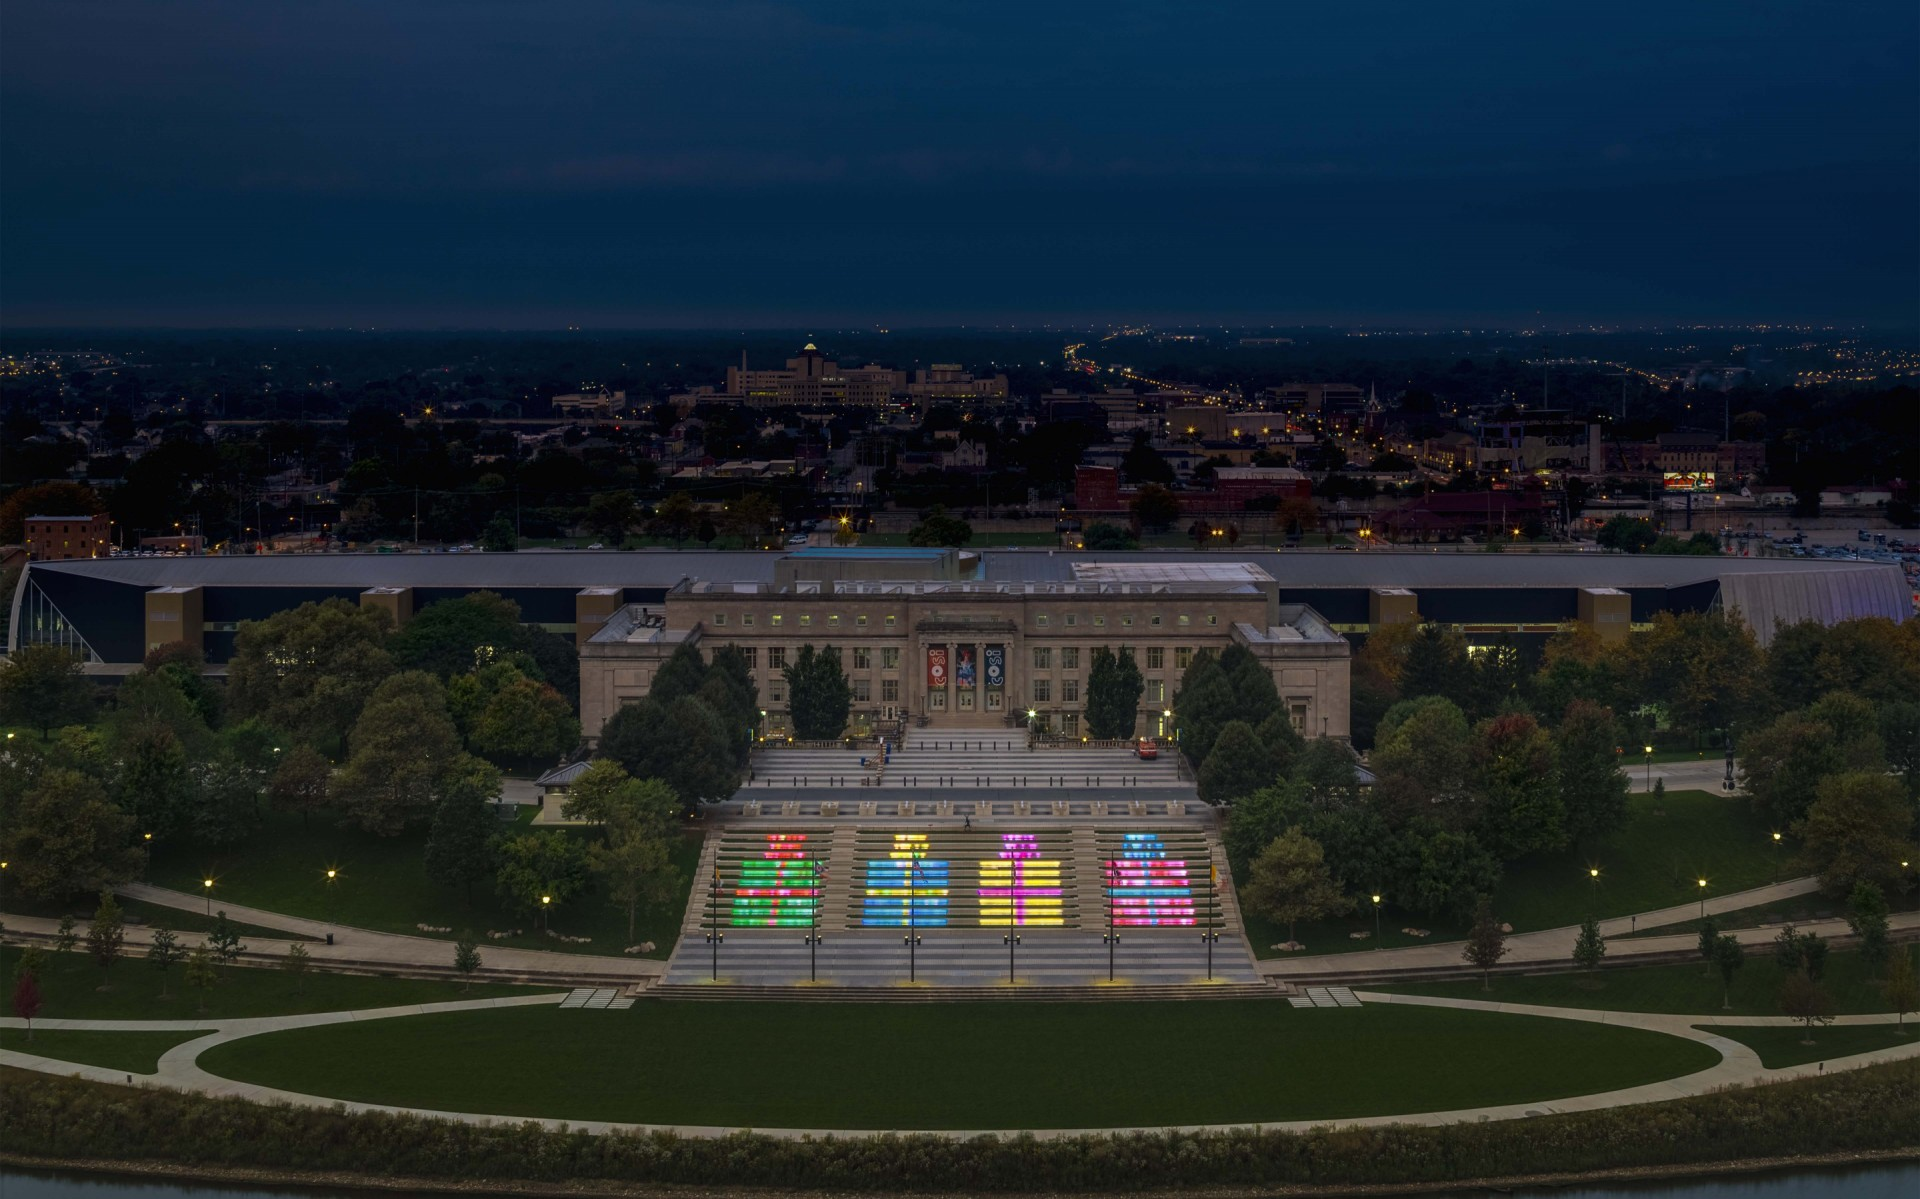 Illumination Arts created a low-res screen on the stairs as well as to create objects and gateways surrounding the amphitheater that interacted with people's presence.  – Feinknopf Photography